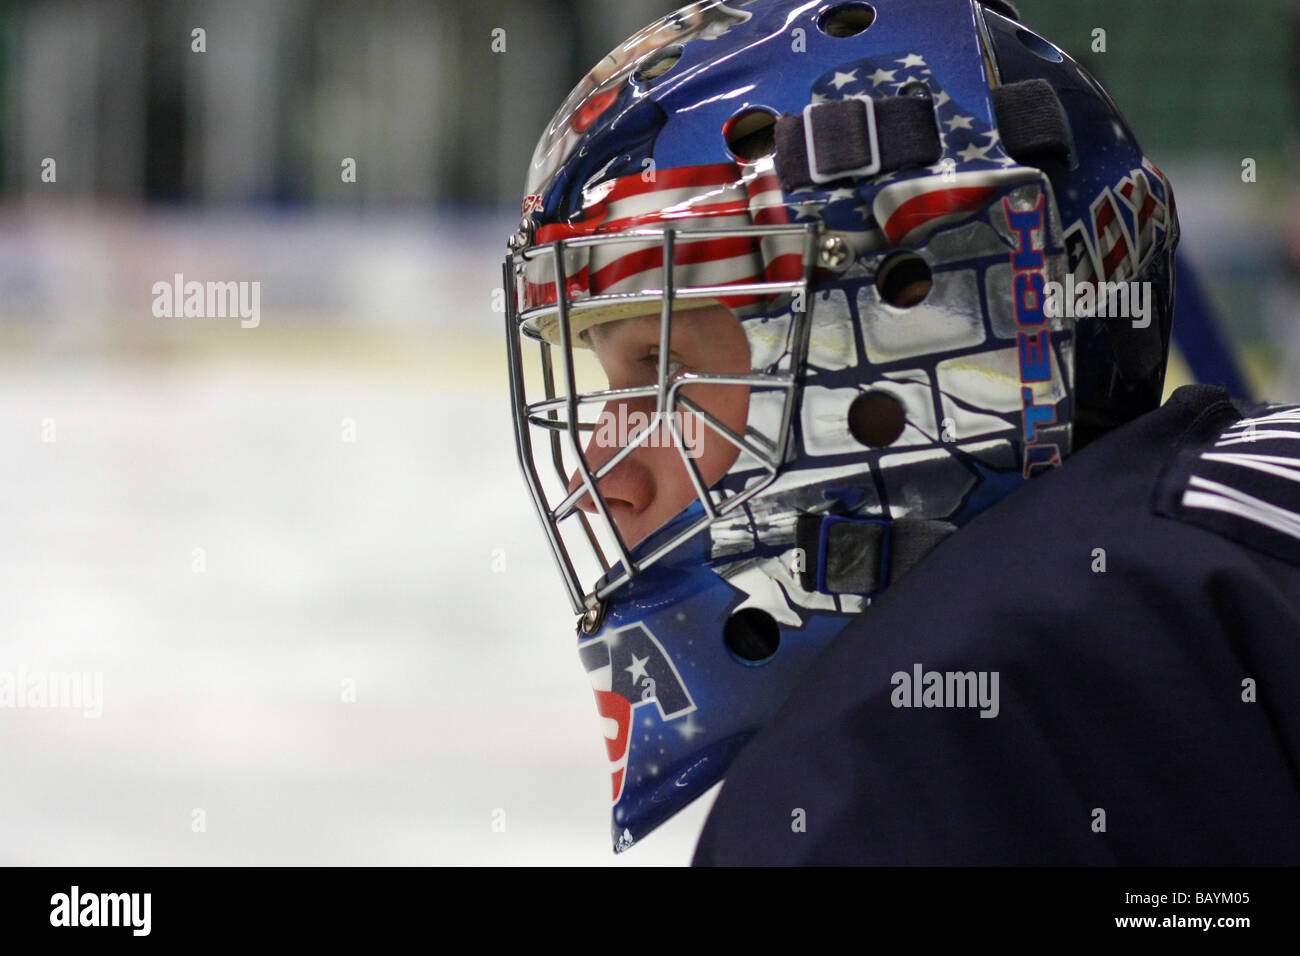 Close-up photo of US goalkeeper Brandon Maxwell playing for team USA in a U18 tournament - Stock Image